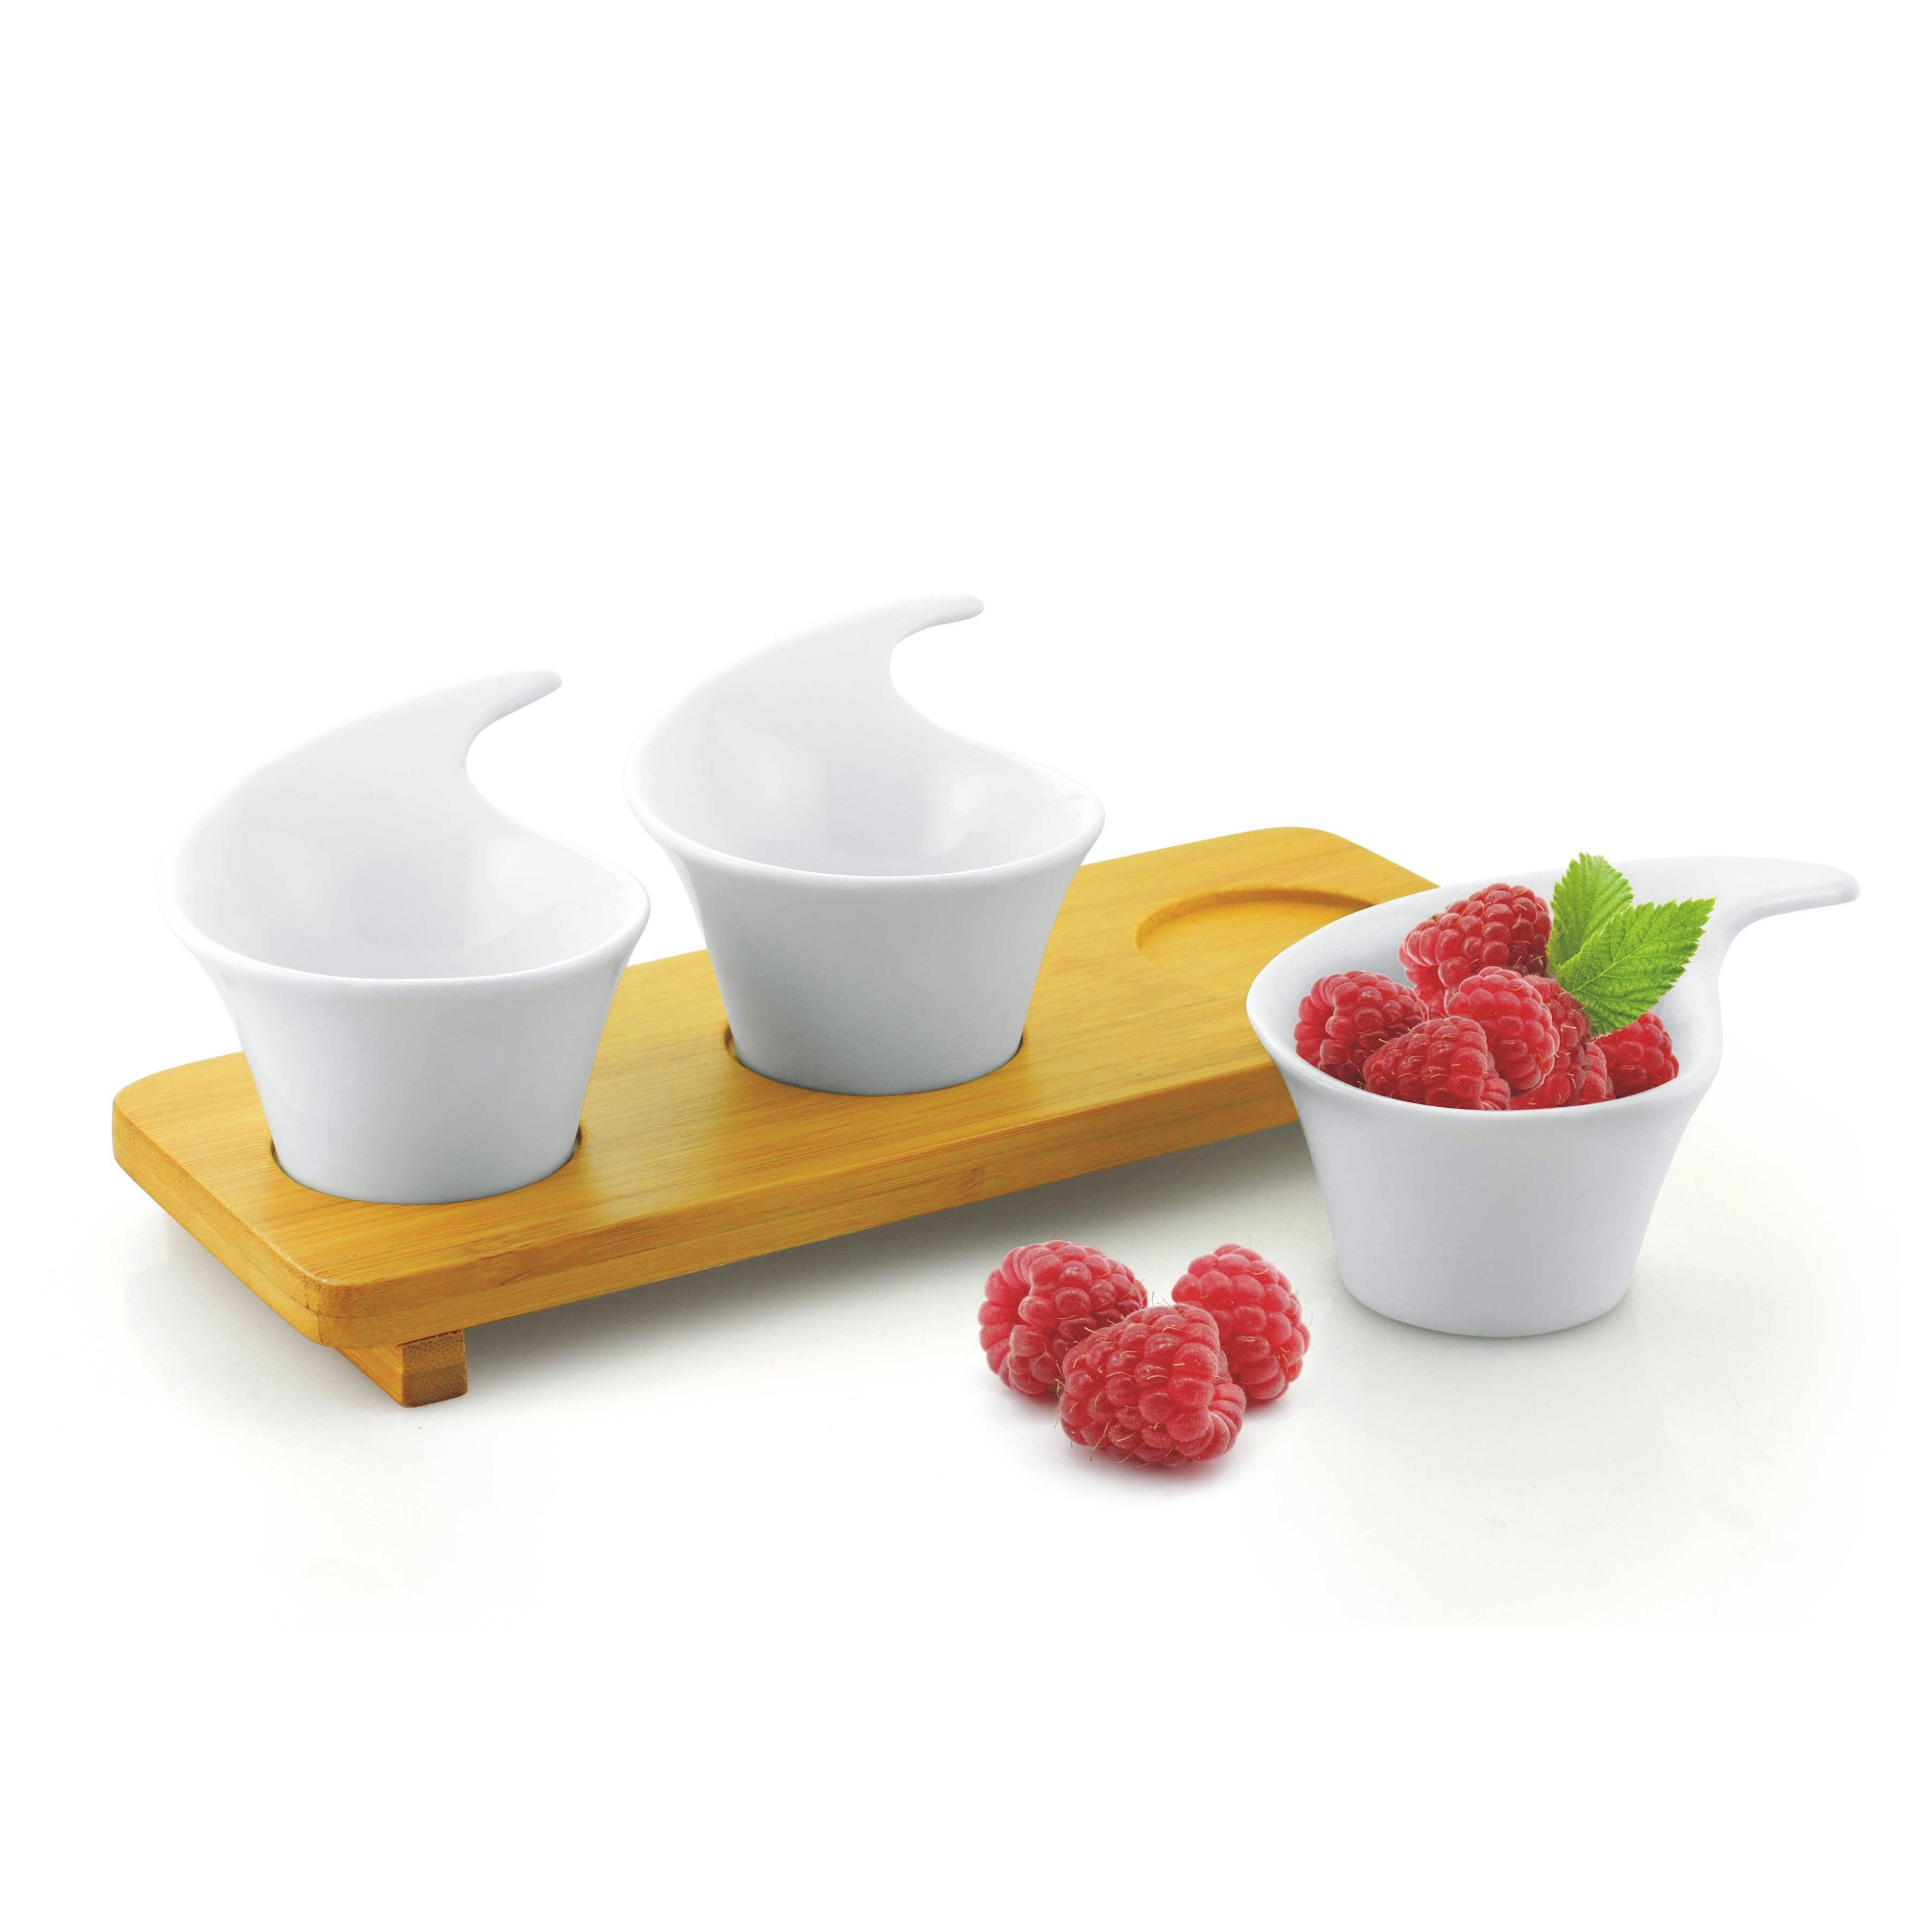 4-piece Porcelain Tasting Cups with Bamboo Tray Set